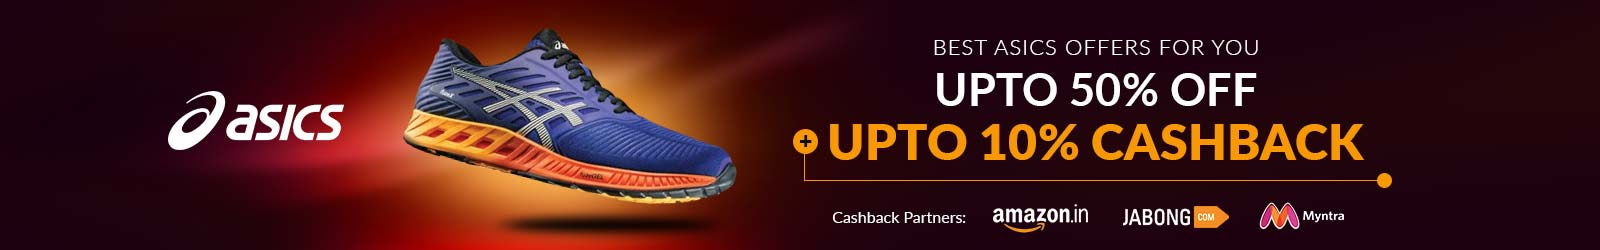 655e356479 Asics Shoes Price List India: 60% Off Offers | Asics Shoes Online Sale